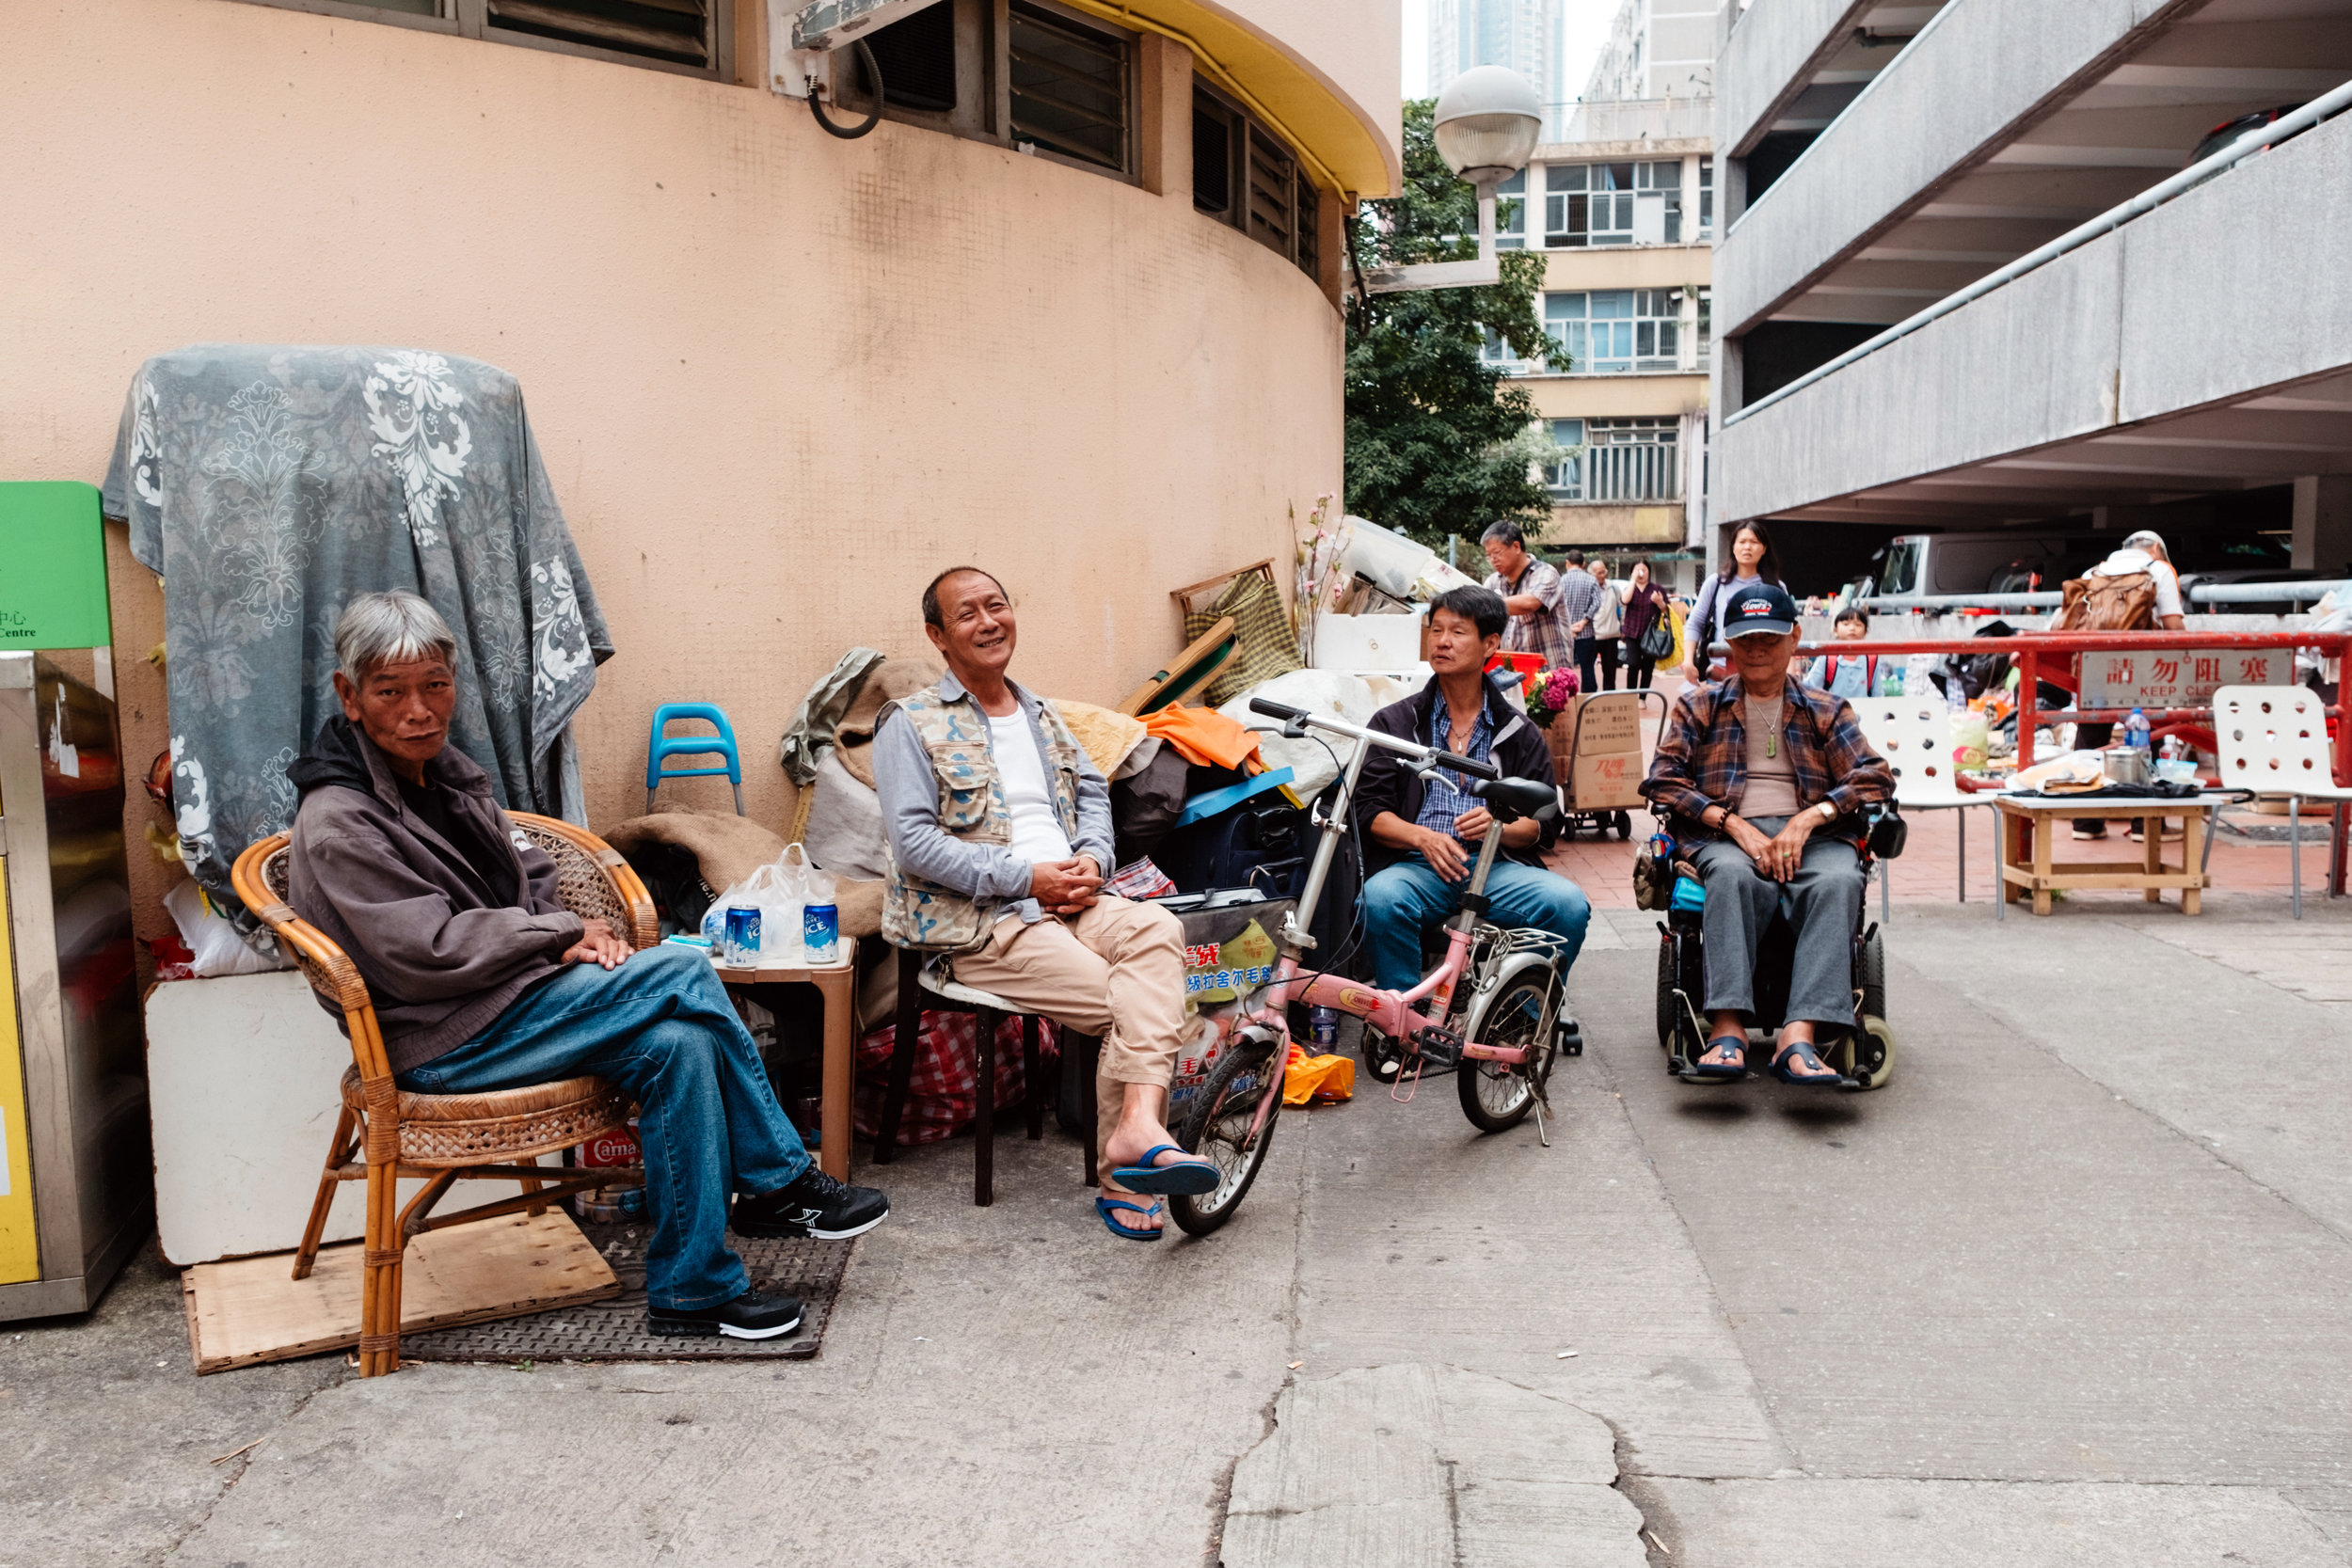 Four men join each other for a drink in a Kowloon Hong Kong back alley in a residential area